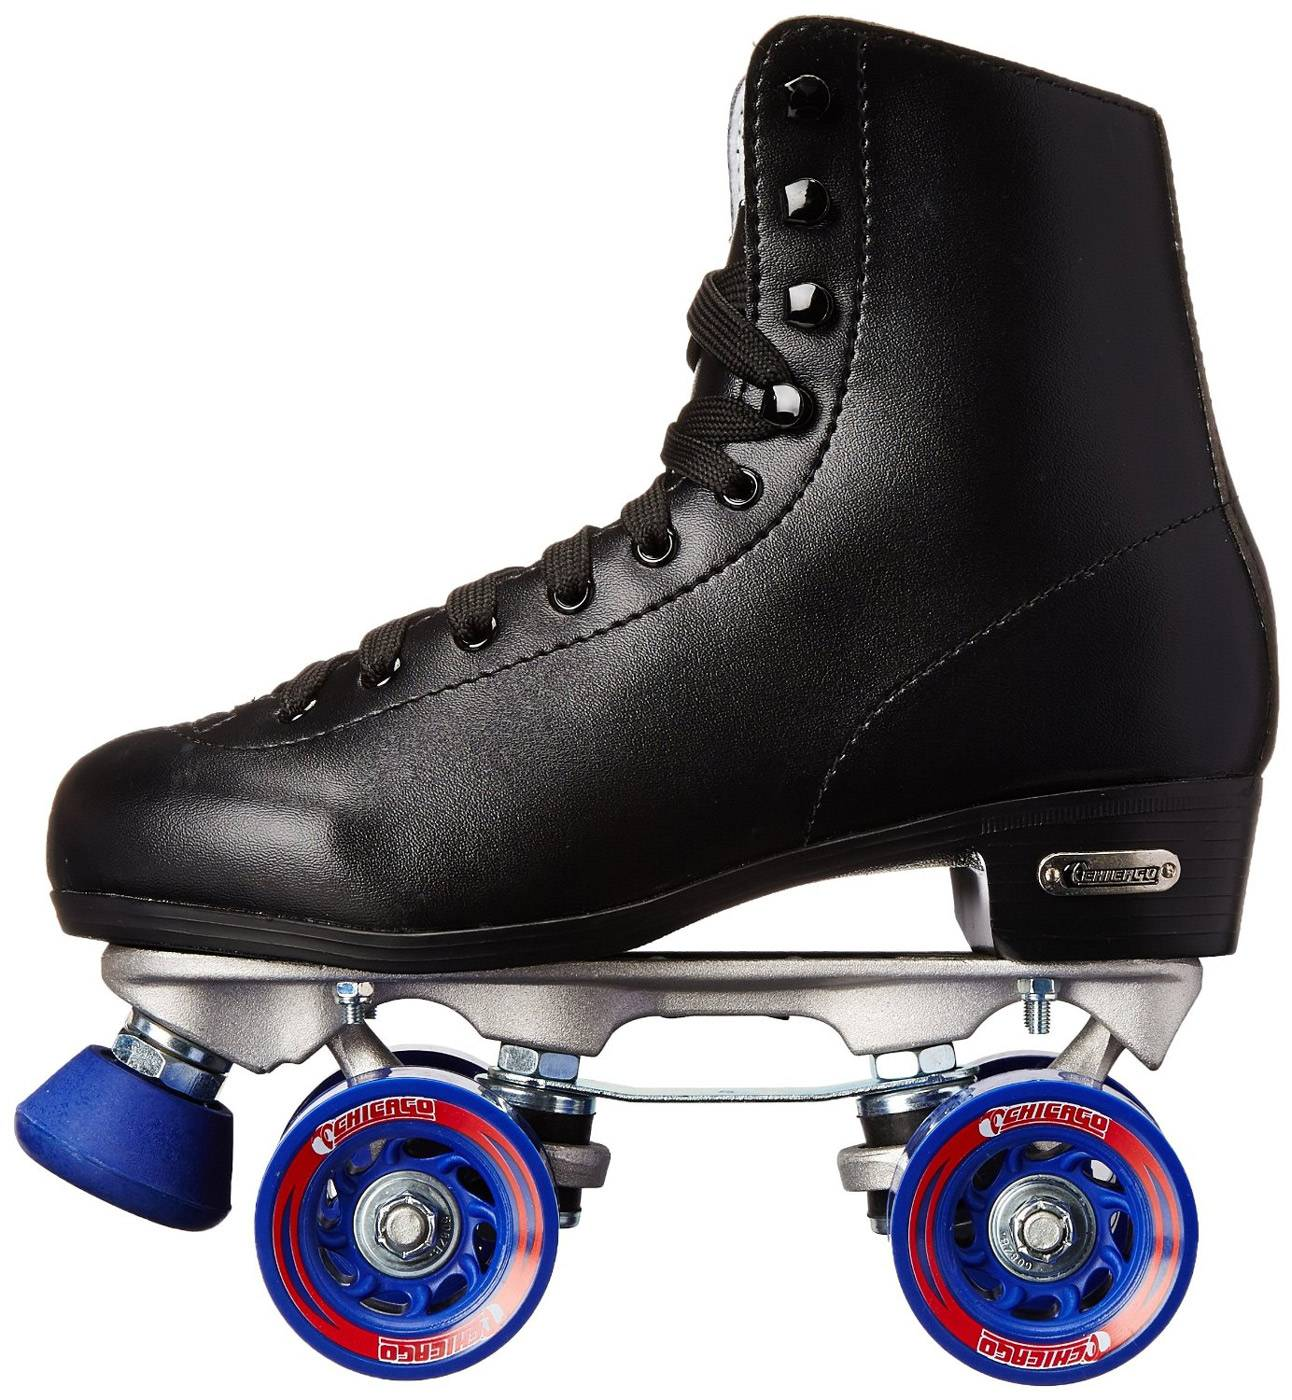 Chicago 405 Men S Roller Skates